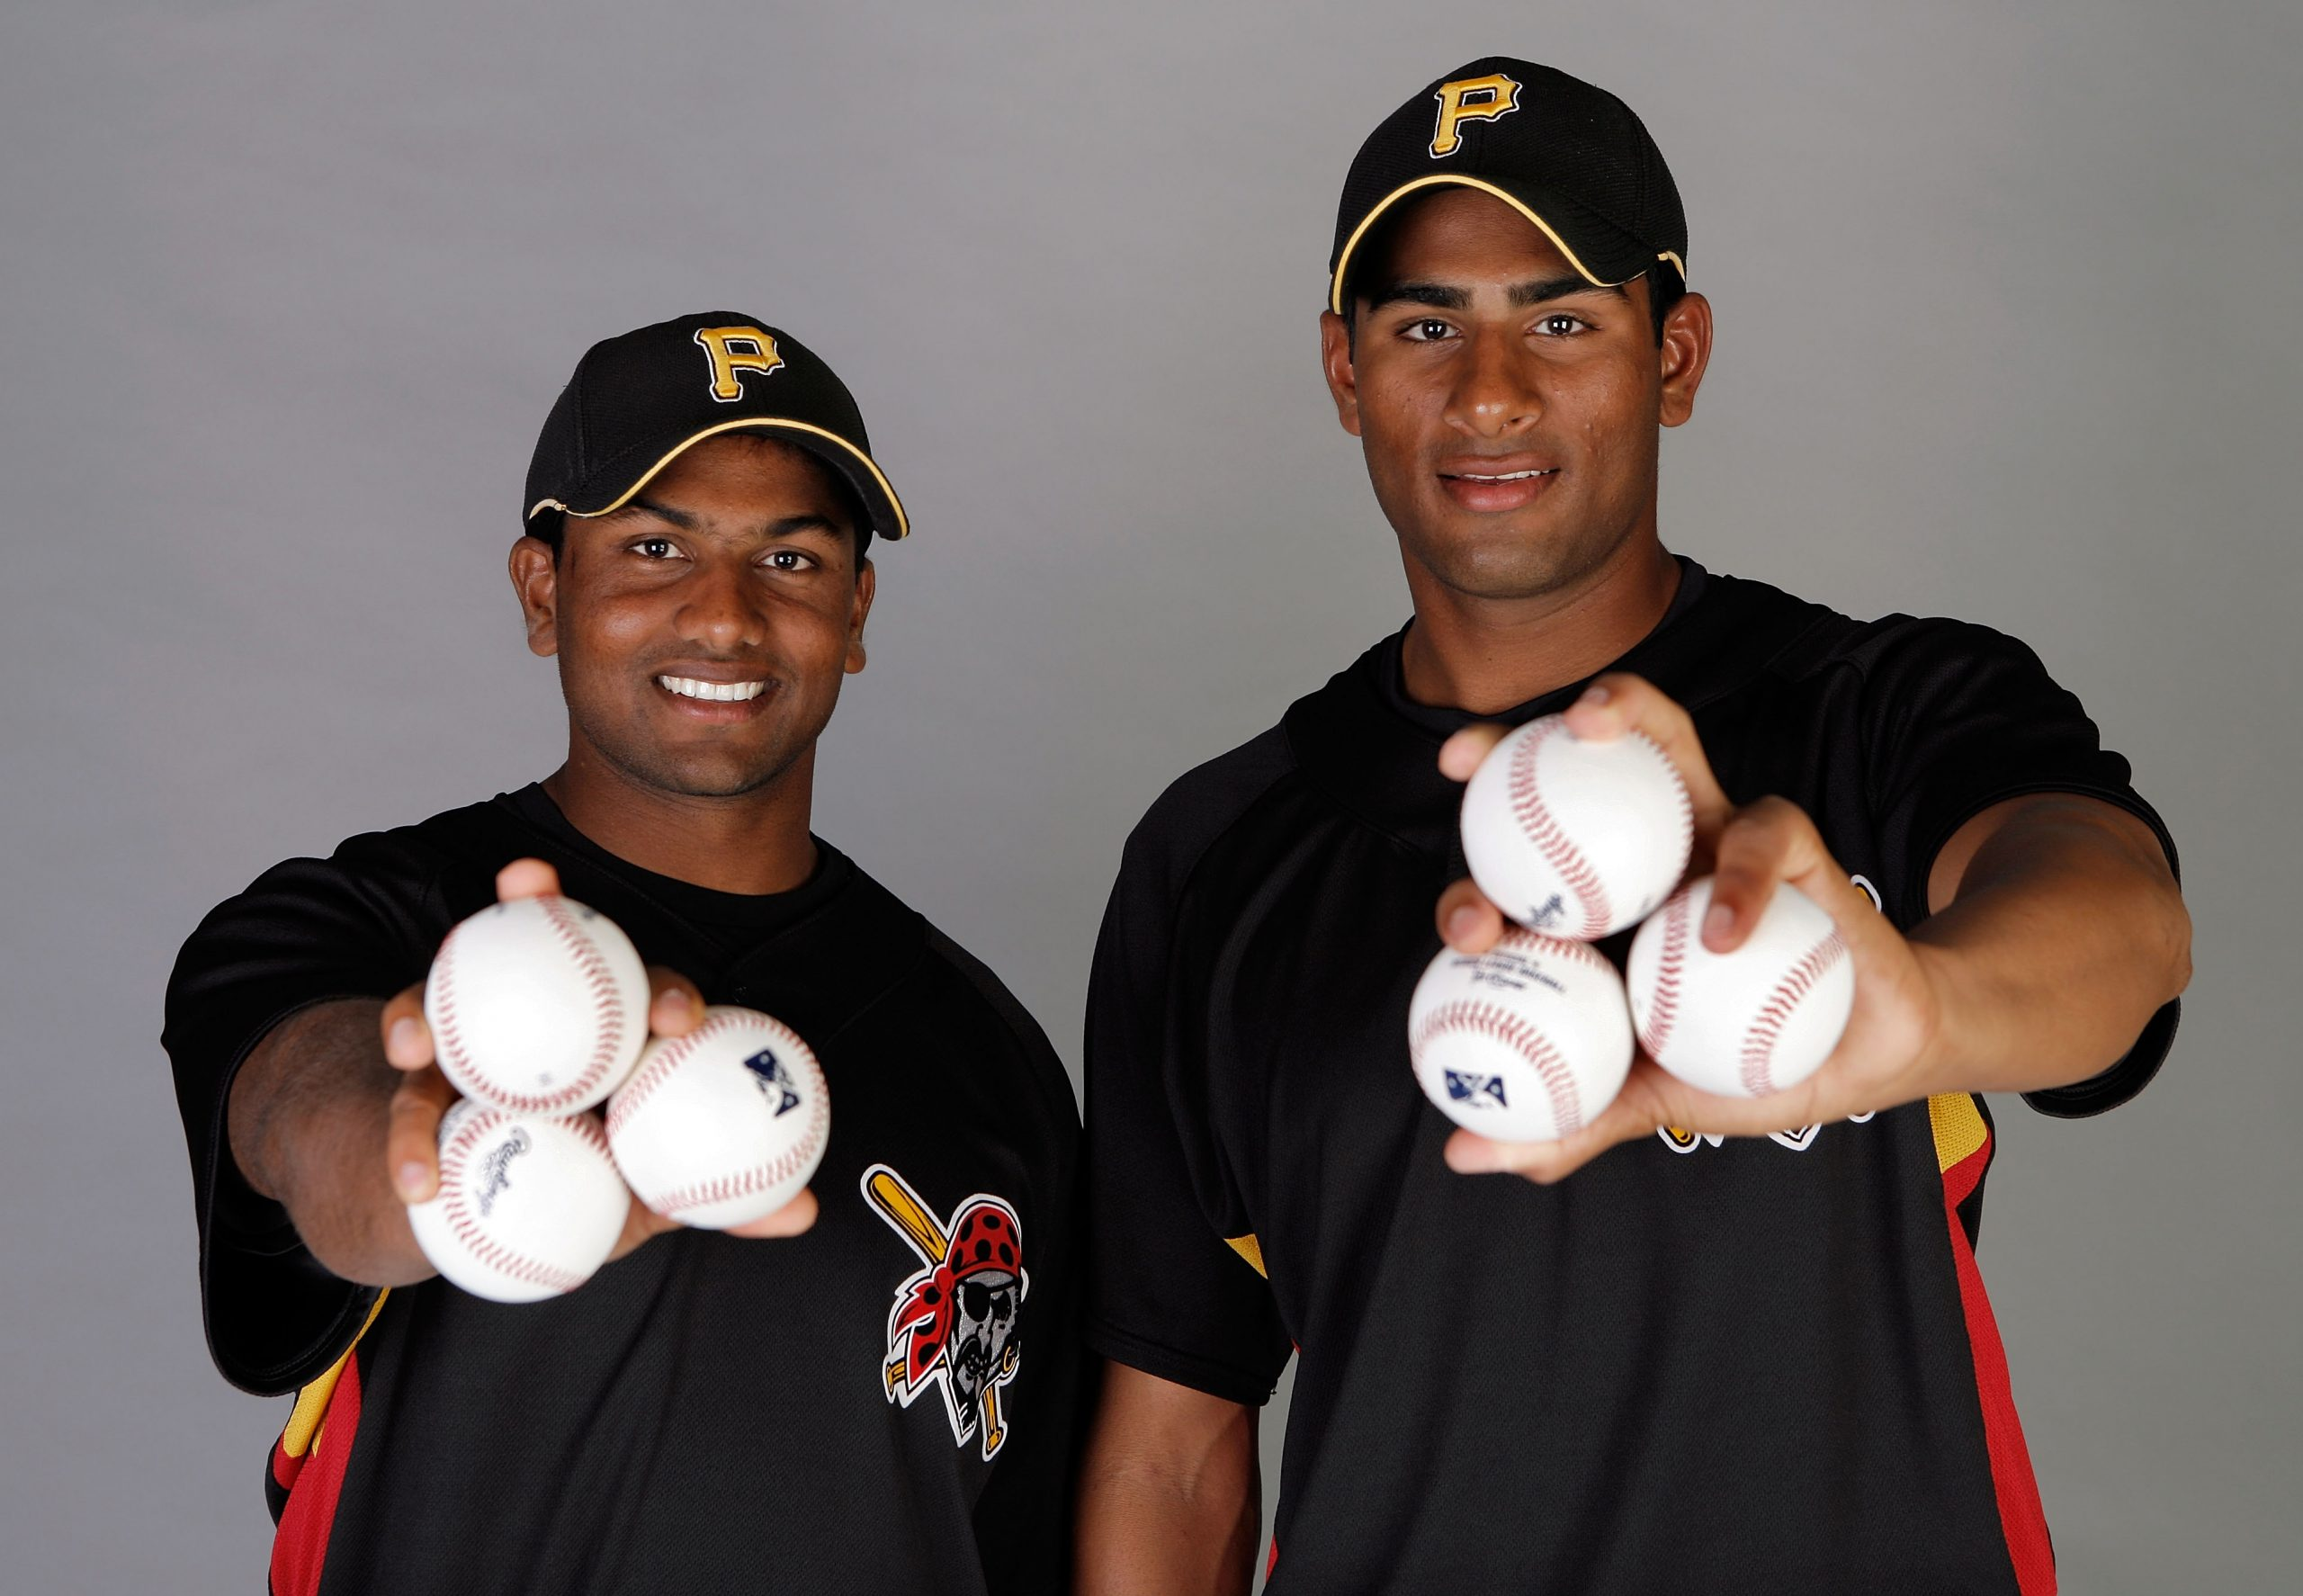 Dinesh Patel (L) and Rinku Singh were part of Million Dollar Arm  (Photo by Doug Benc/Getty Images)